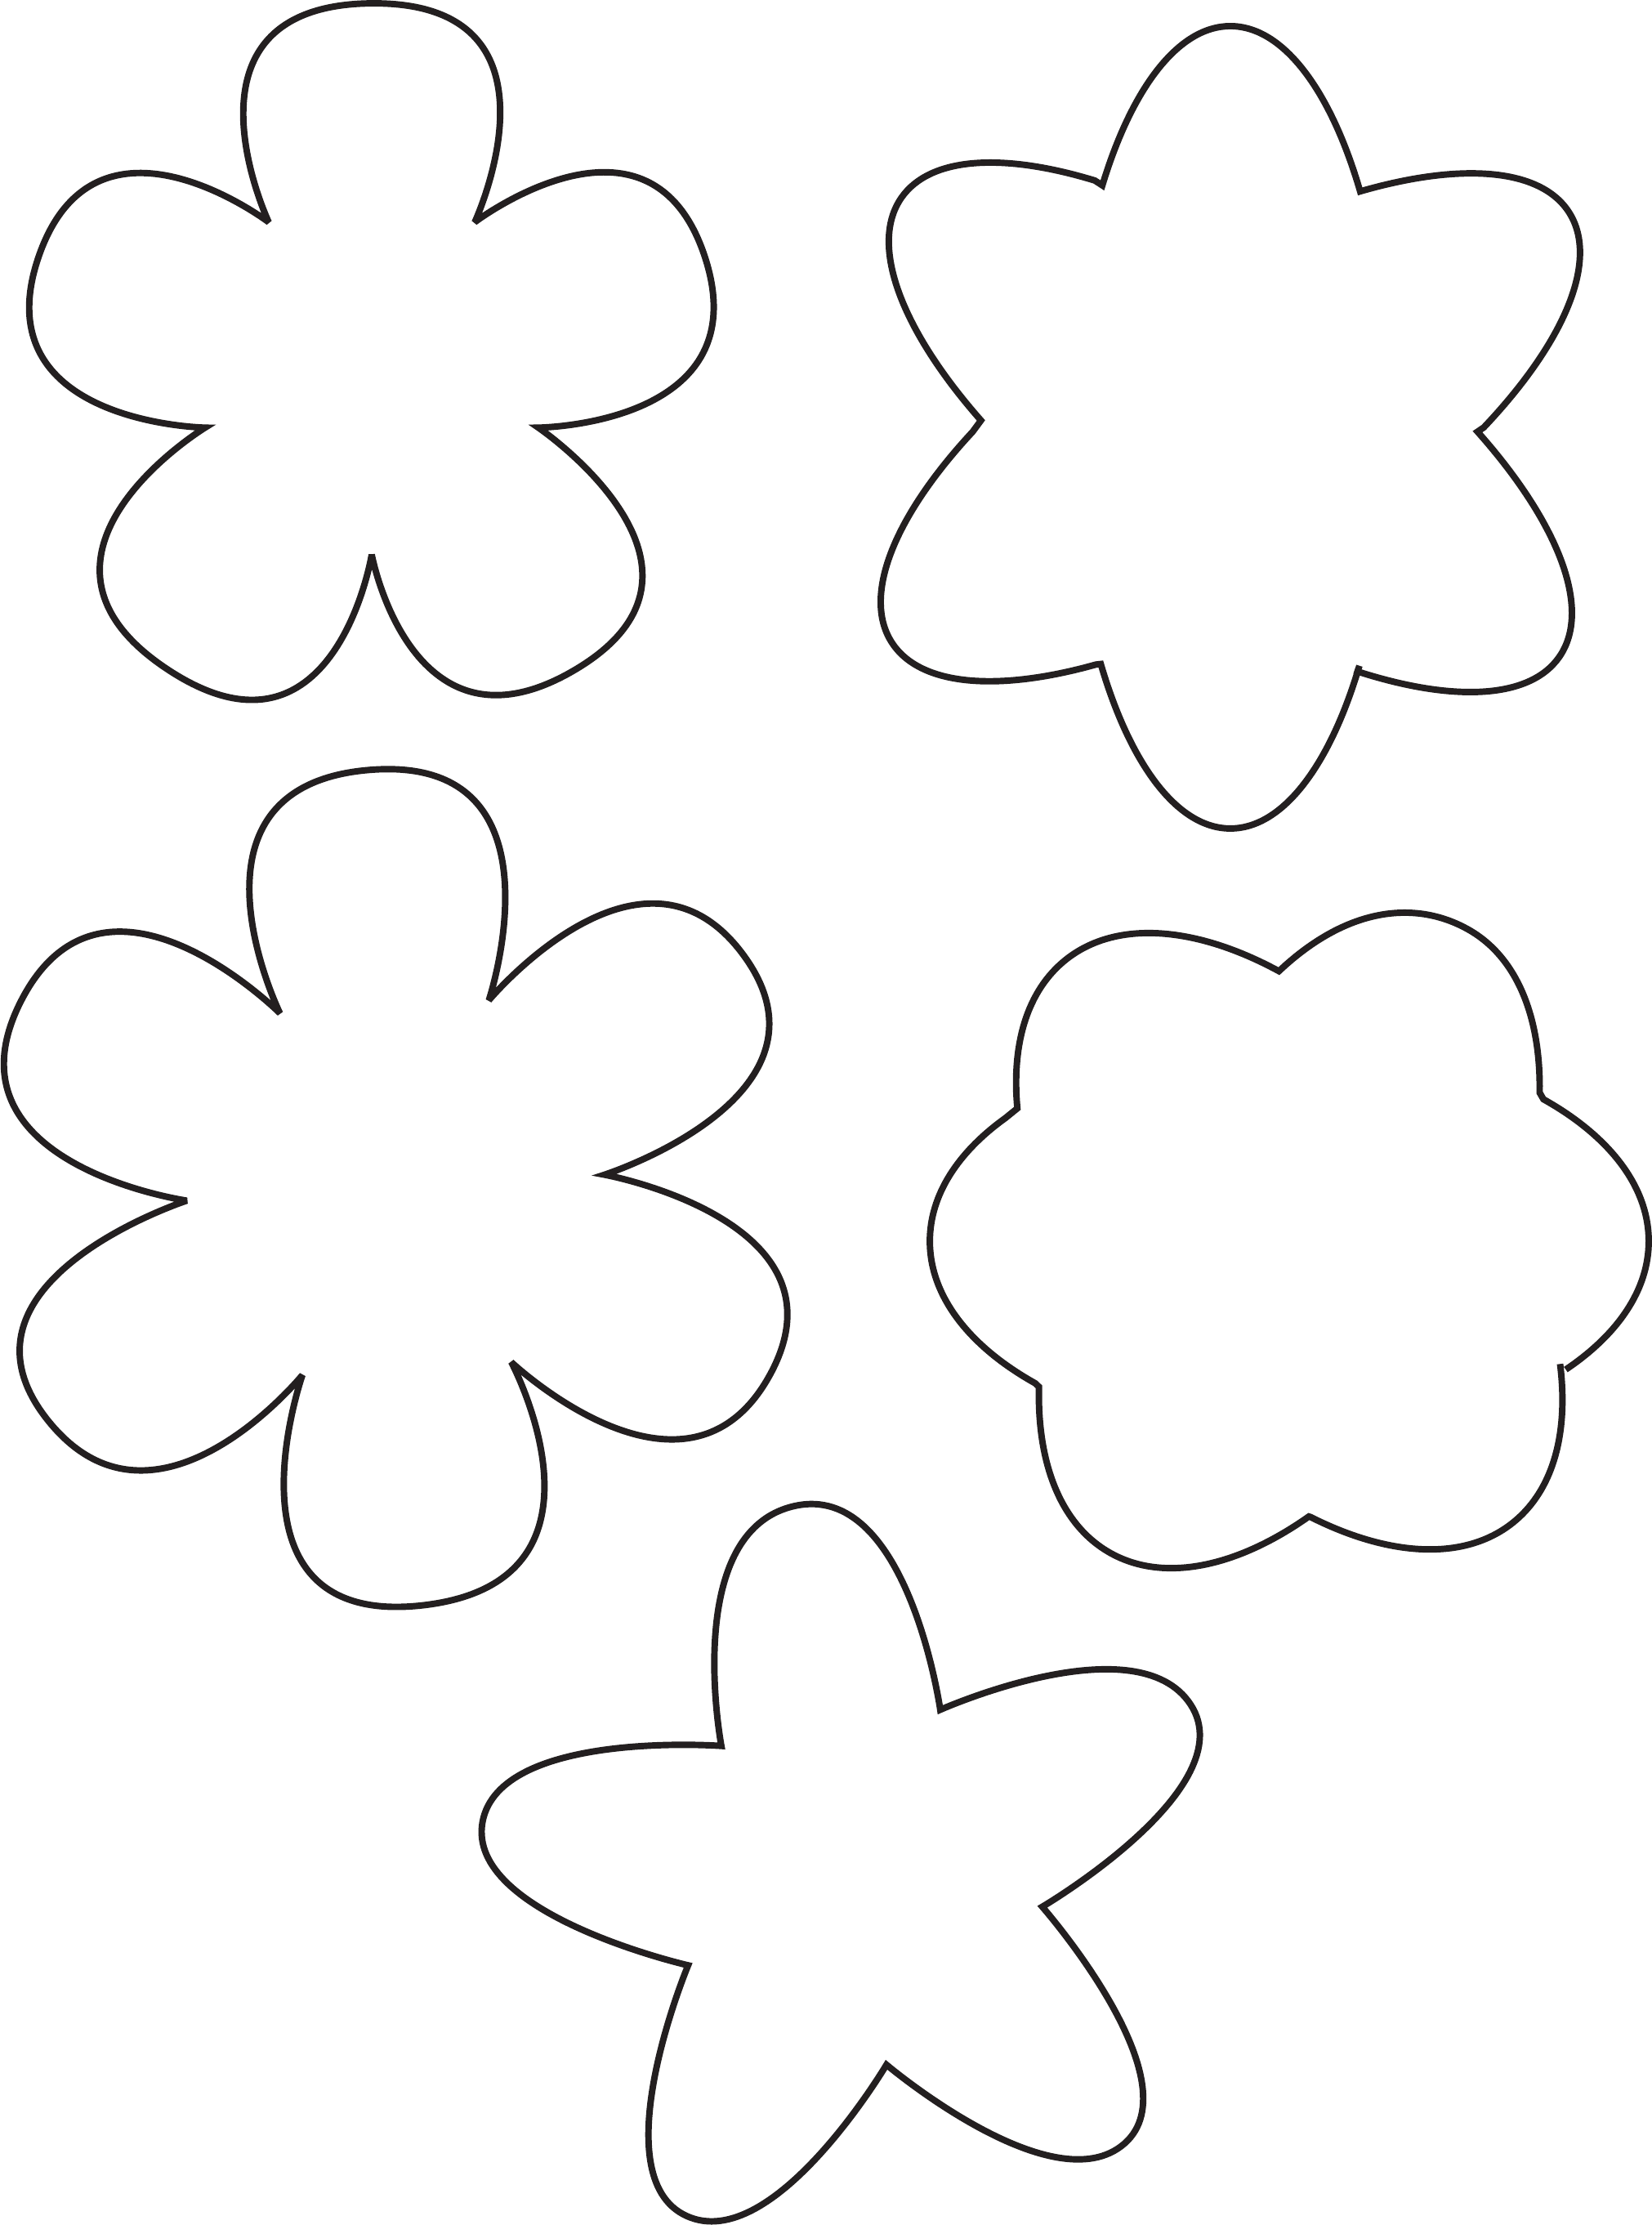 Simple Flower Template Free Download